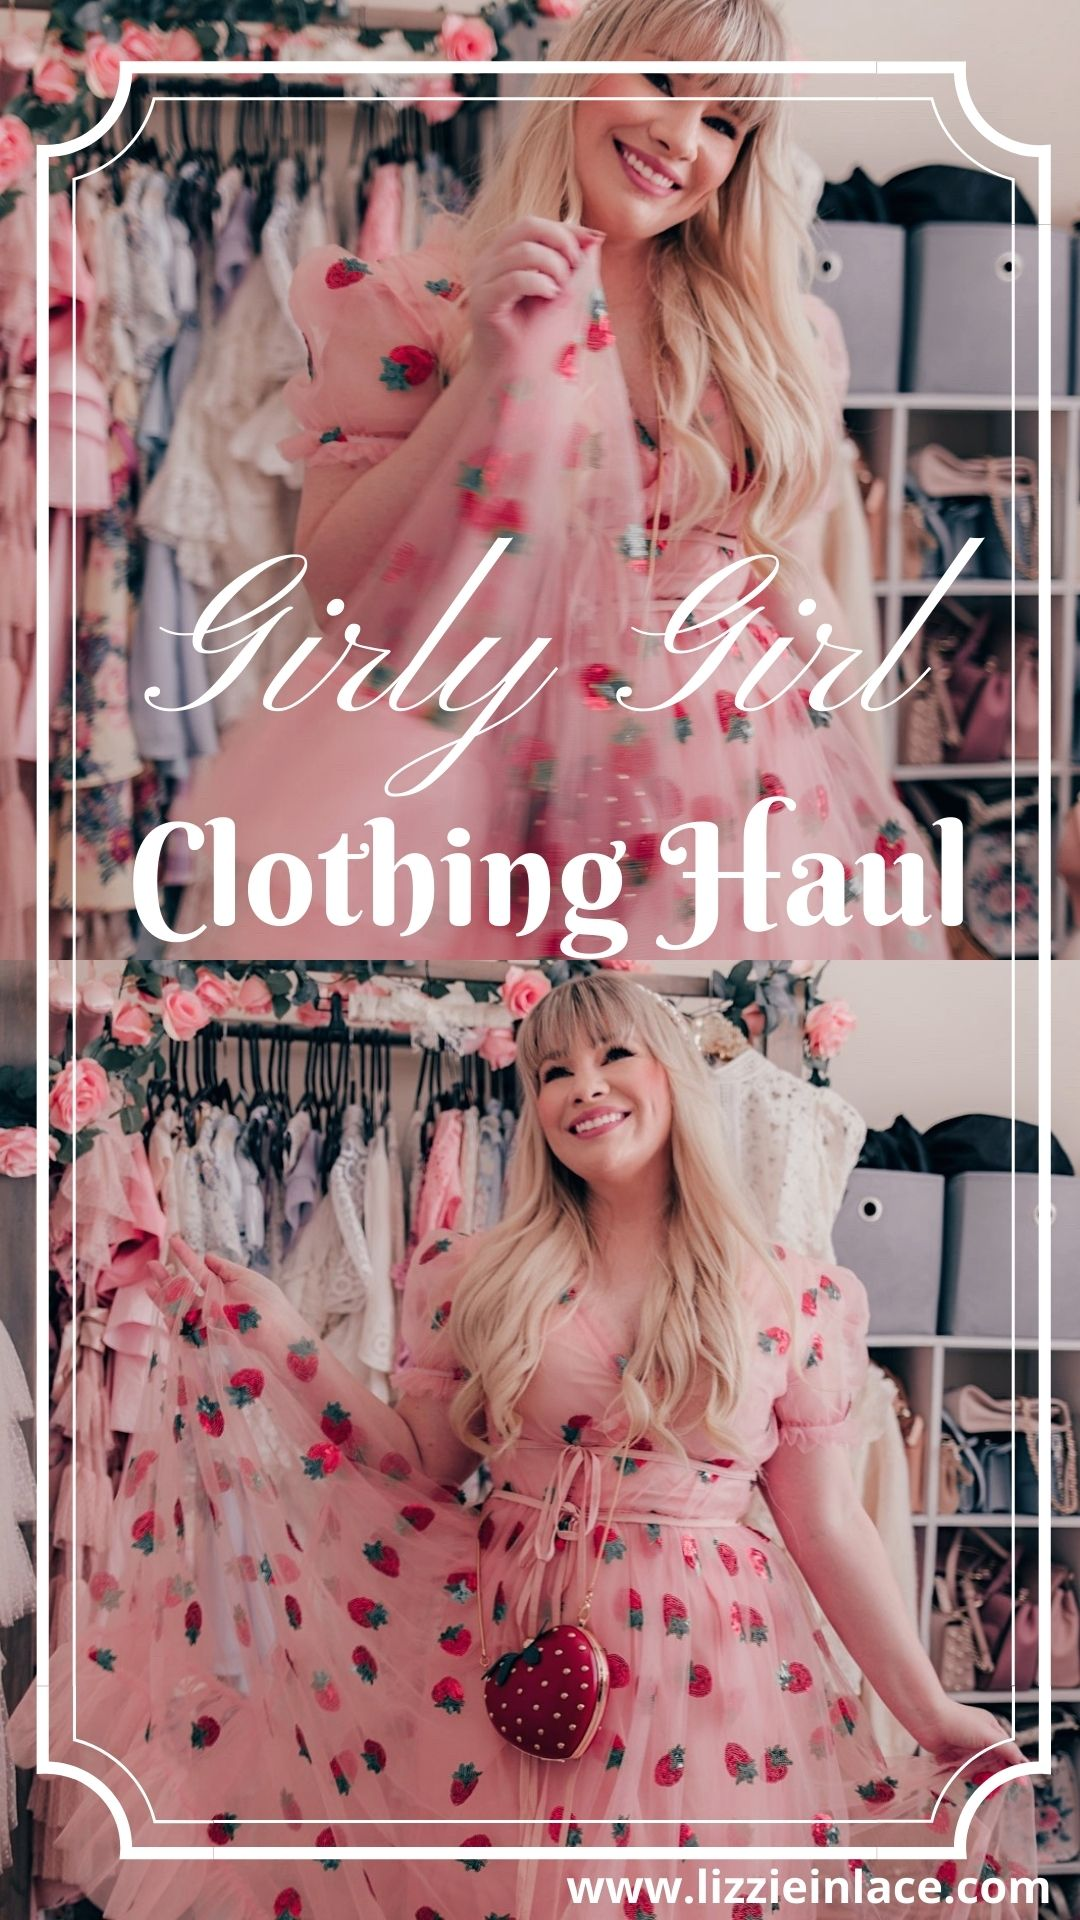 Fashion Blogger Elizabeth Hugen of Lizzie in Lace shares her feminine fashion haul including this strawberry dress dupe, feminine dresses, cozy cardigans and chic accessories!